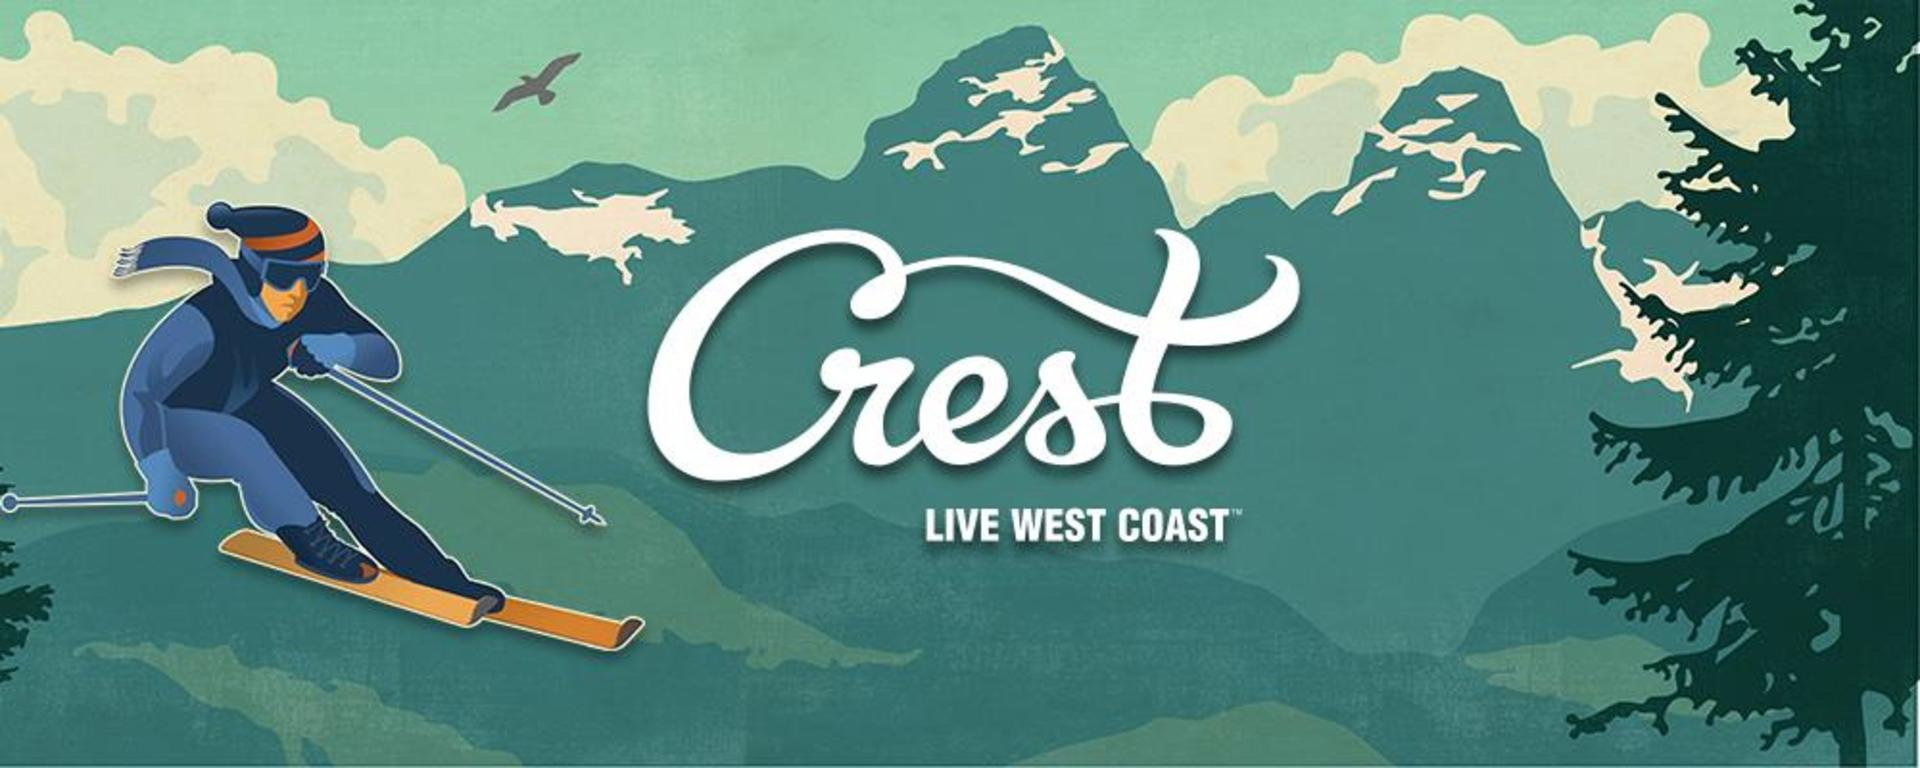 crest at Crest (150 East 8th Street, Lower Lonsdale, North Vancouver)